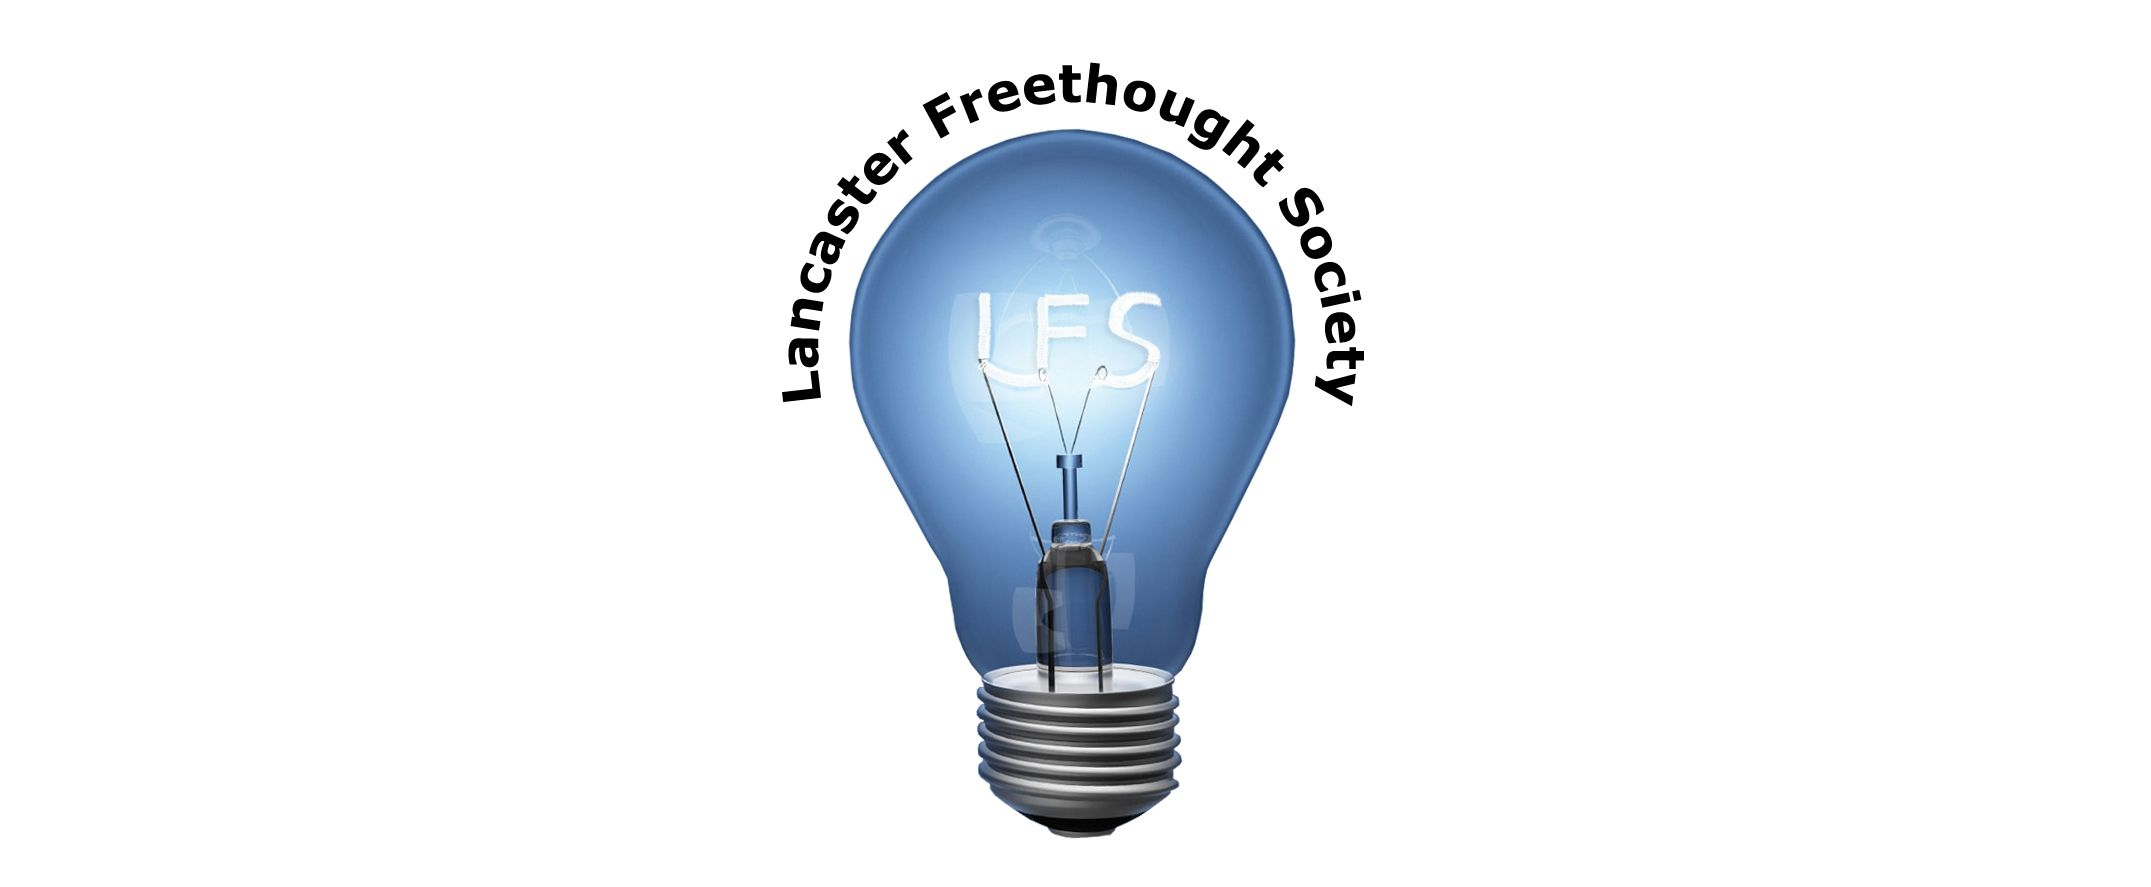 Lancaster Freethought Society